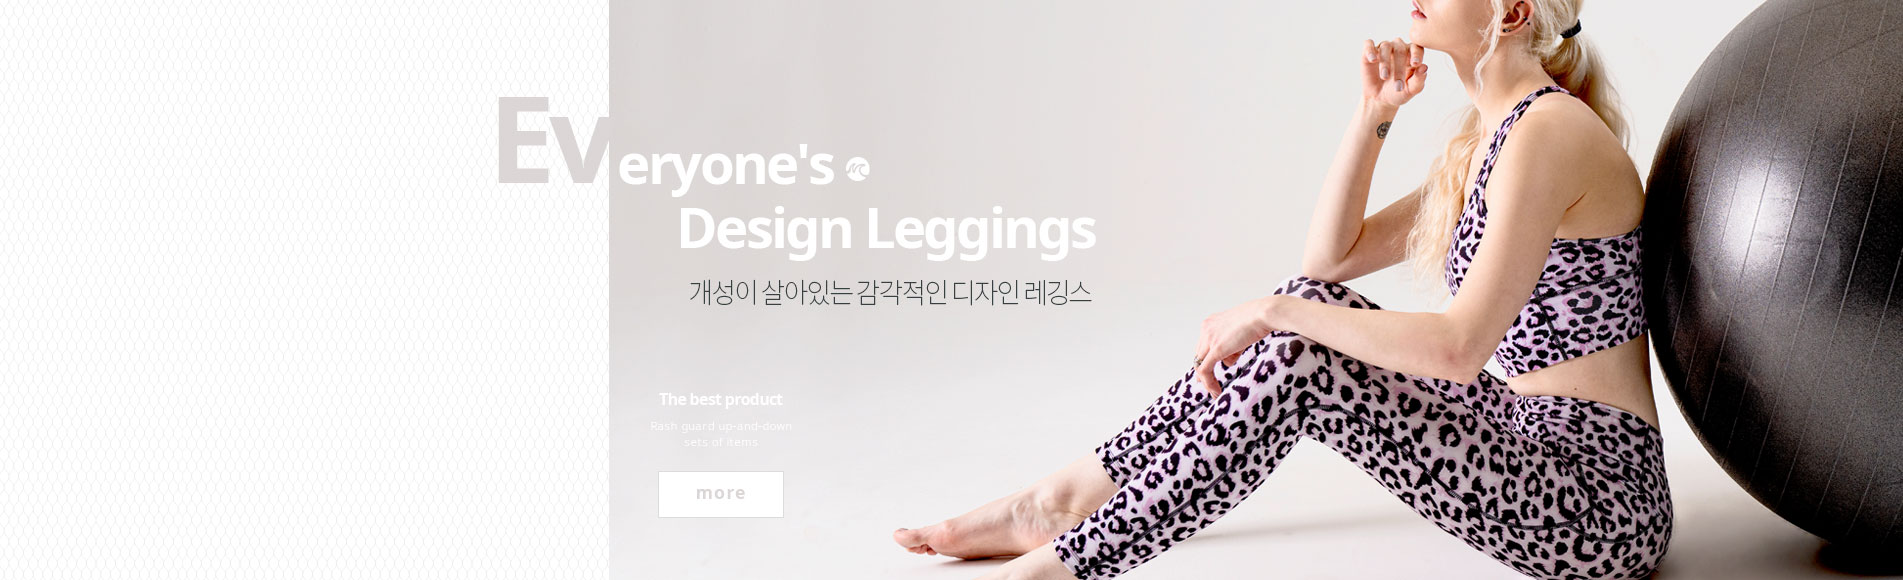 main_03 (leggings - disign leggings)